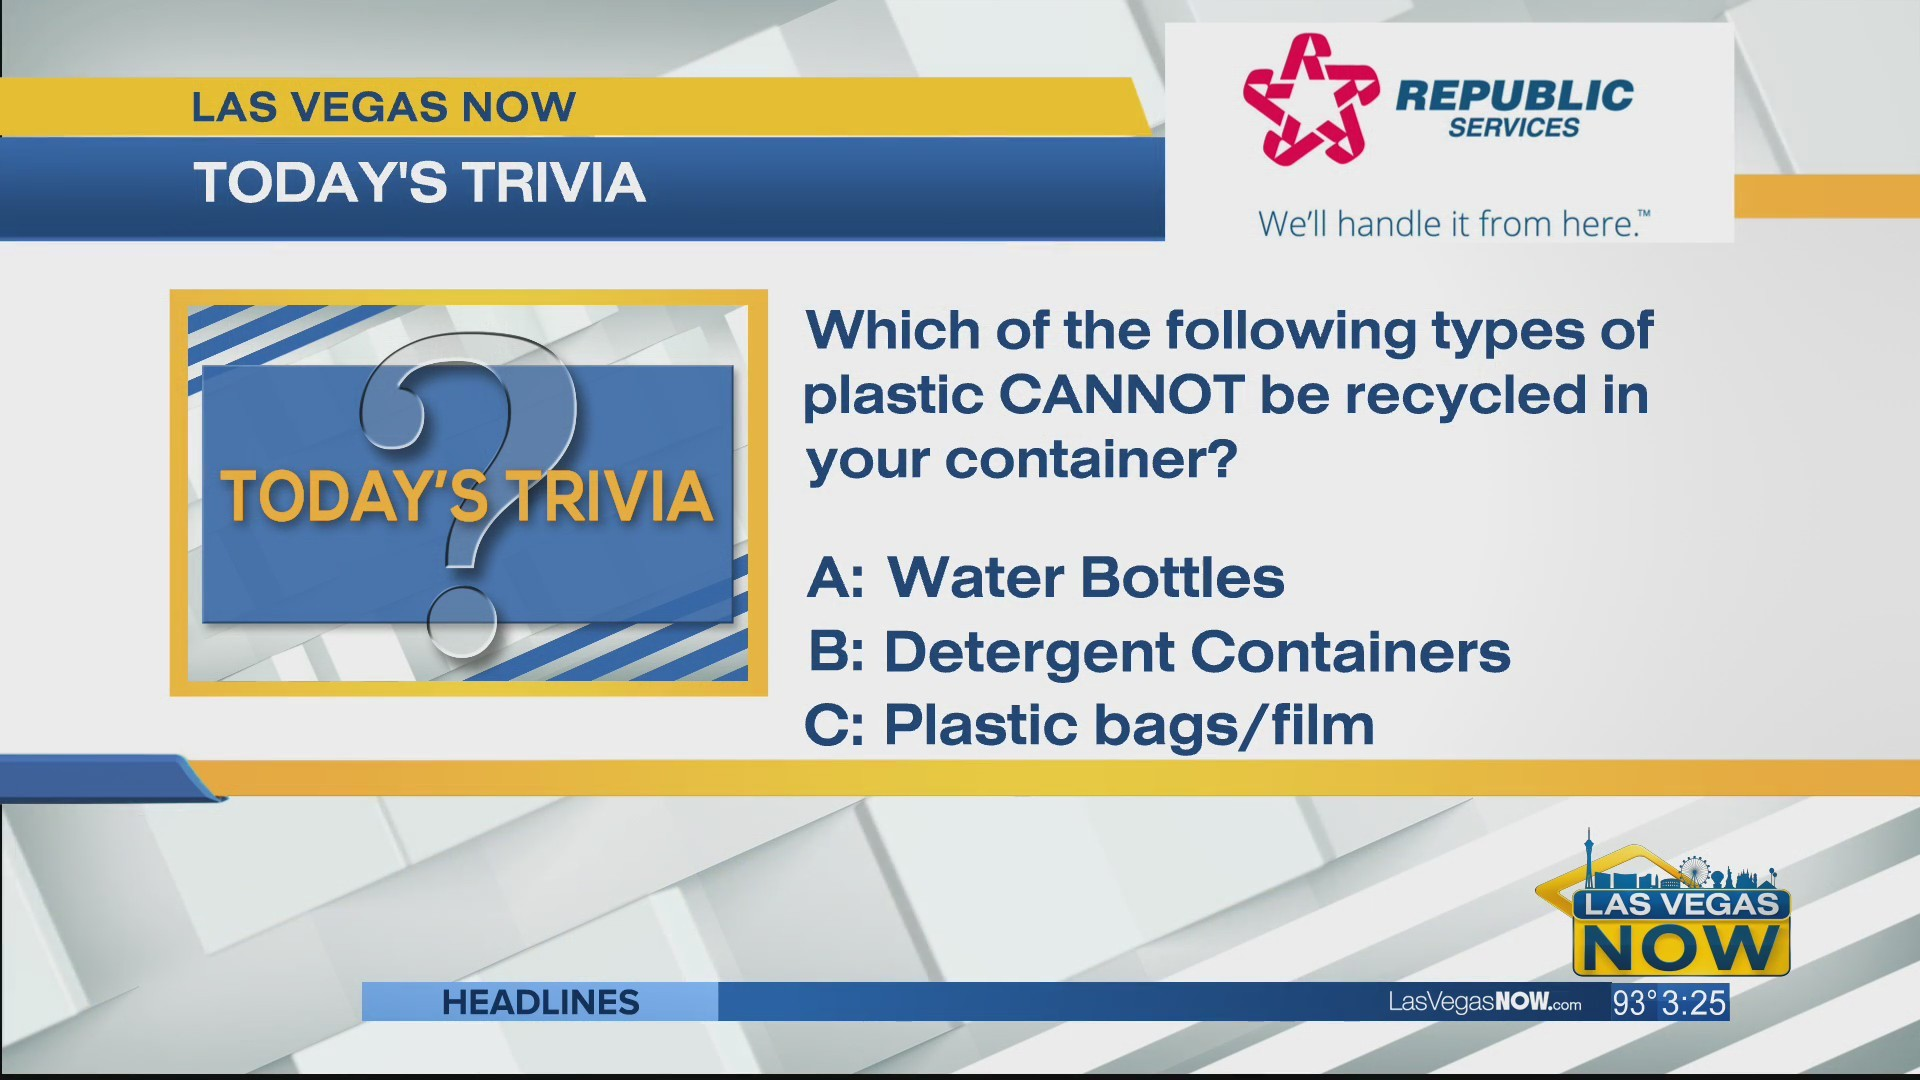 Which types of plastic cannot be recycled in your container?